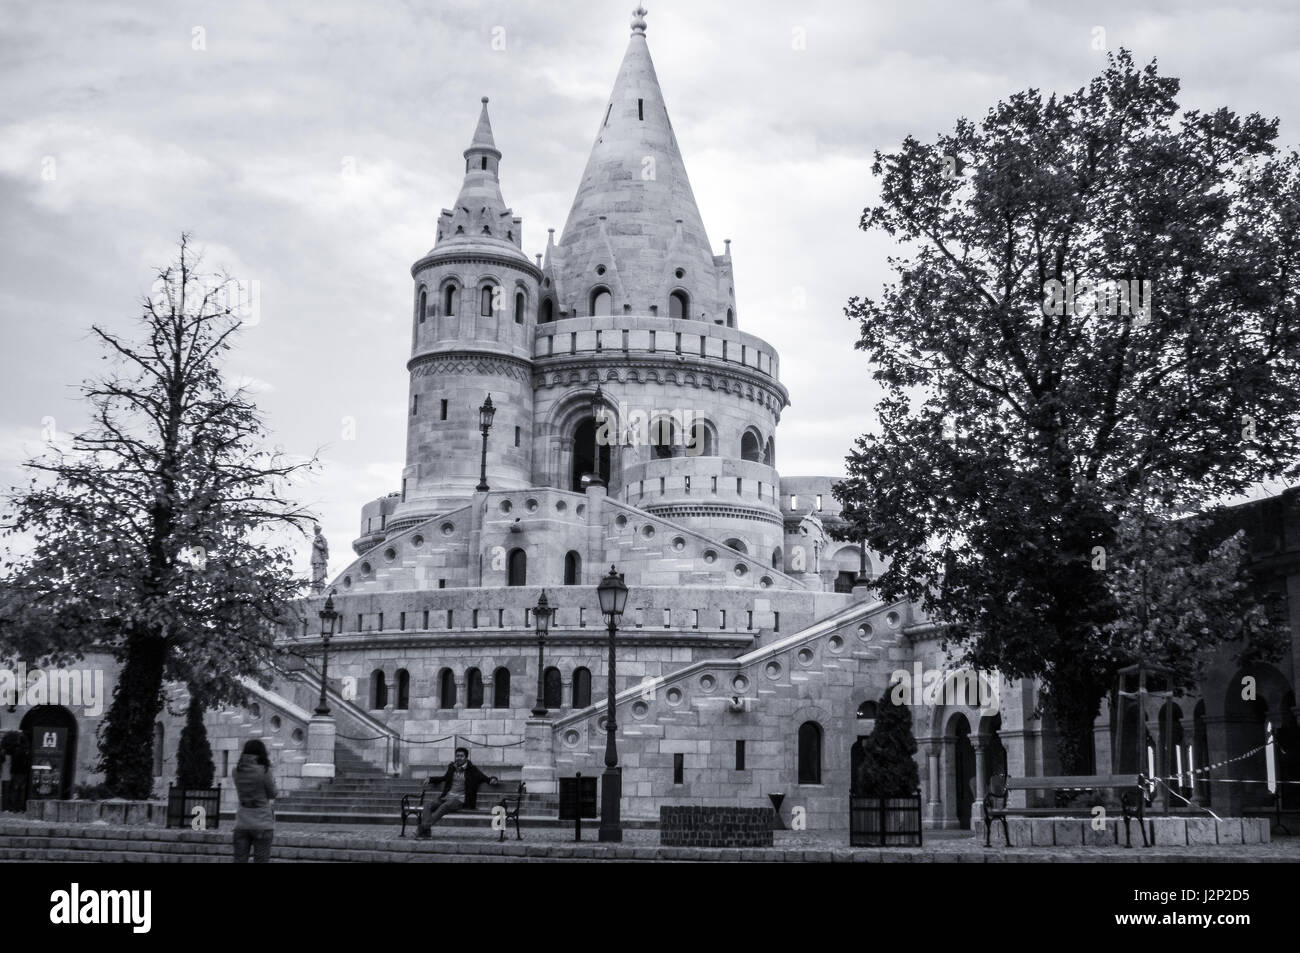 Castle Hill in Budapest, Hungary. - Stock Image